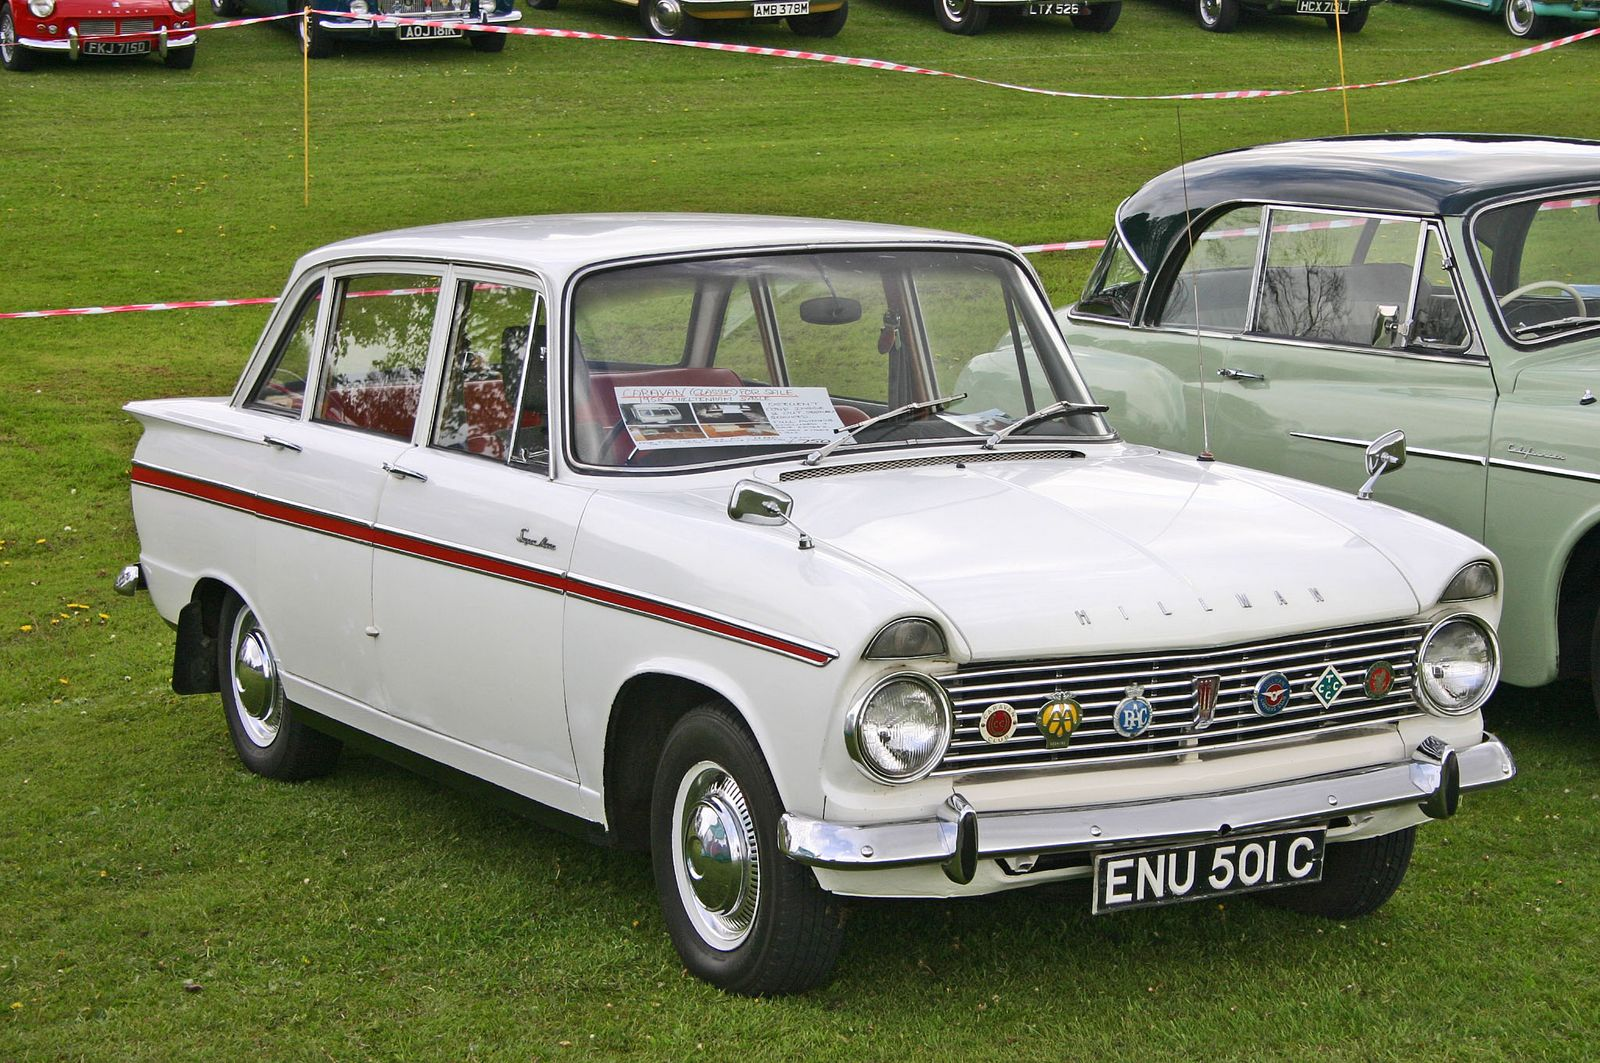 1964 Hillman Super Minx Carsaddiction Com